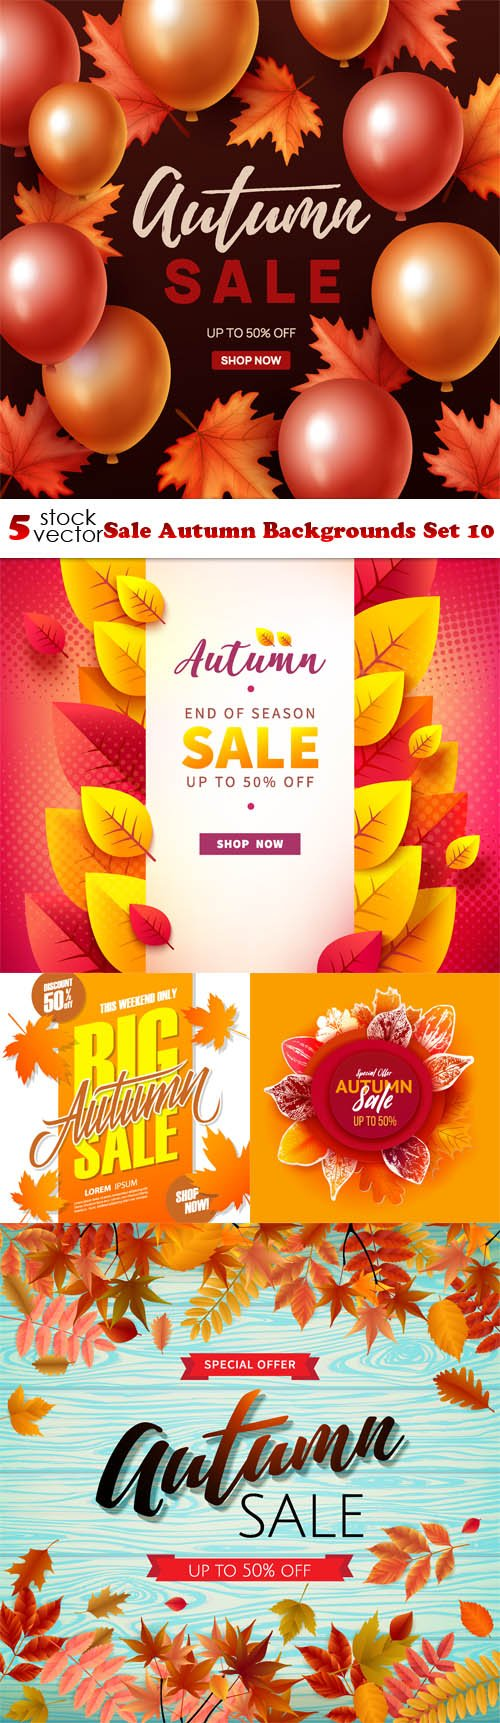 Vectors - Sale Autumn Backgrounds Set 10